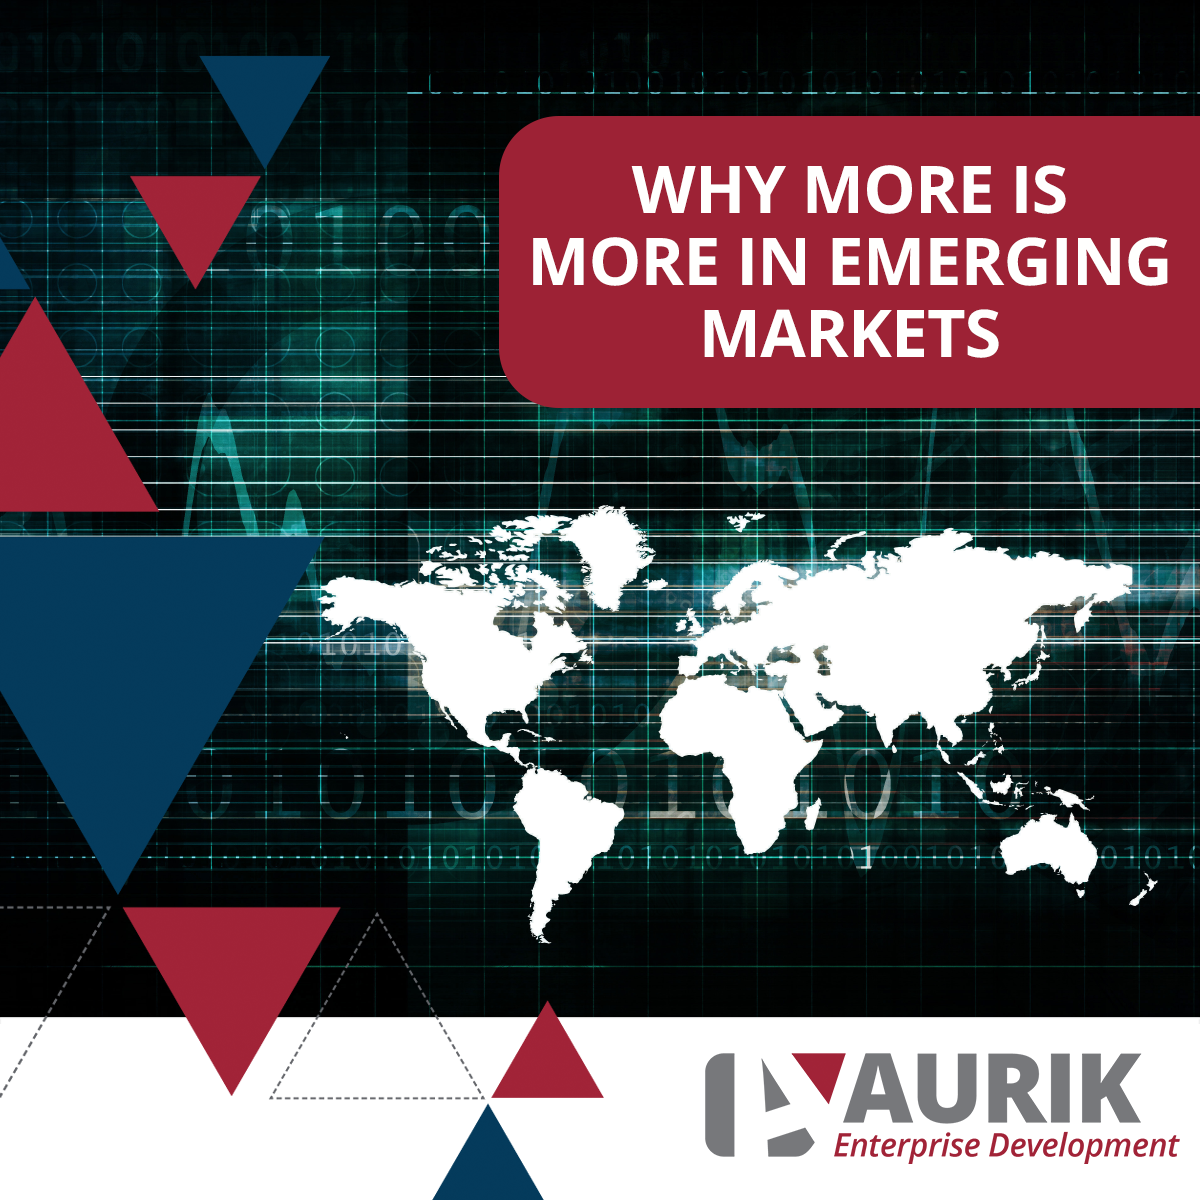 Why more is more in emerging economies